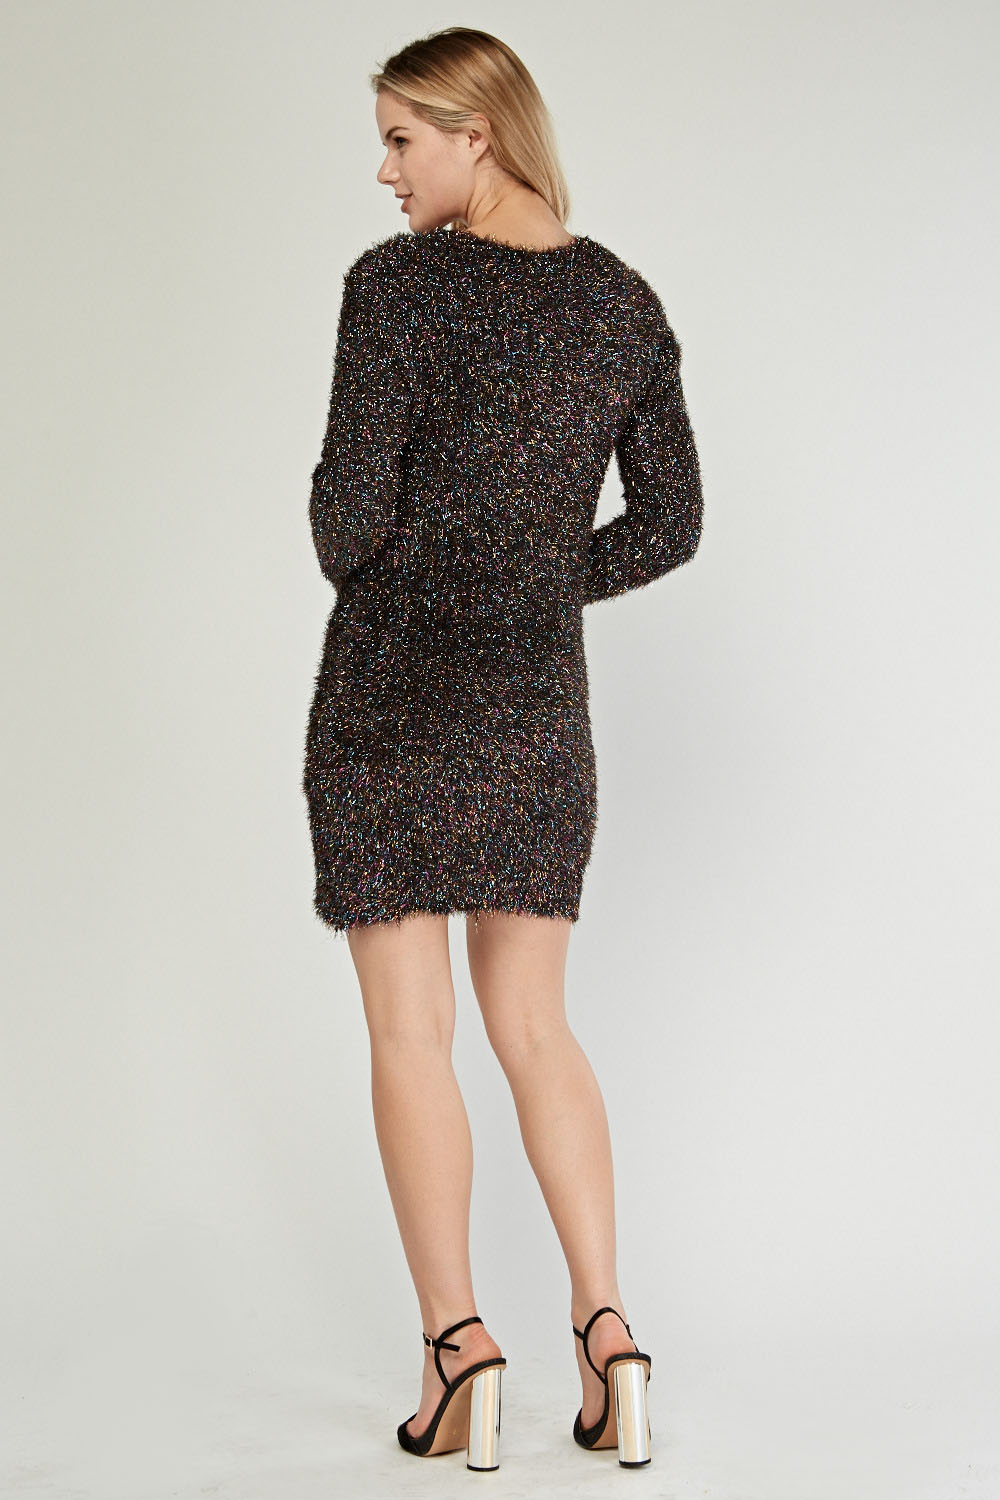 discount price for whole family best sale Textured Contrasted Eyelash Knit Jumper Dress - Just £5